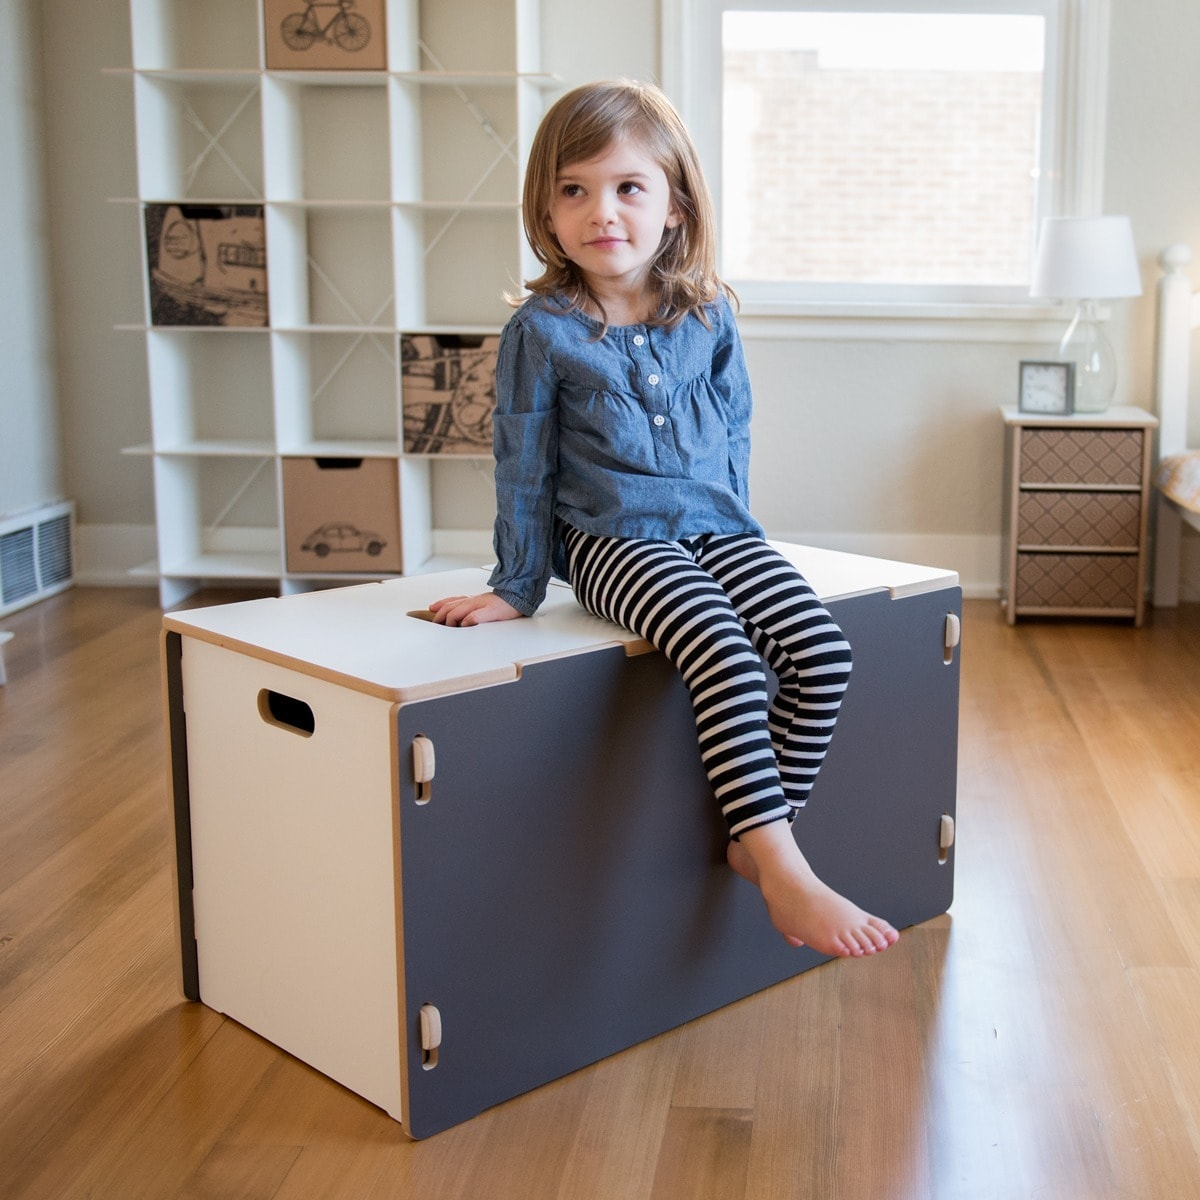 Shop Sprout Kidu0027s Wood Toy Box   On Sale   Free Shipping Today    Overstock.com   7535771